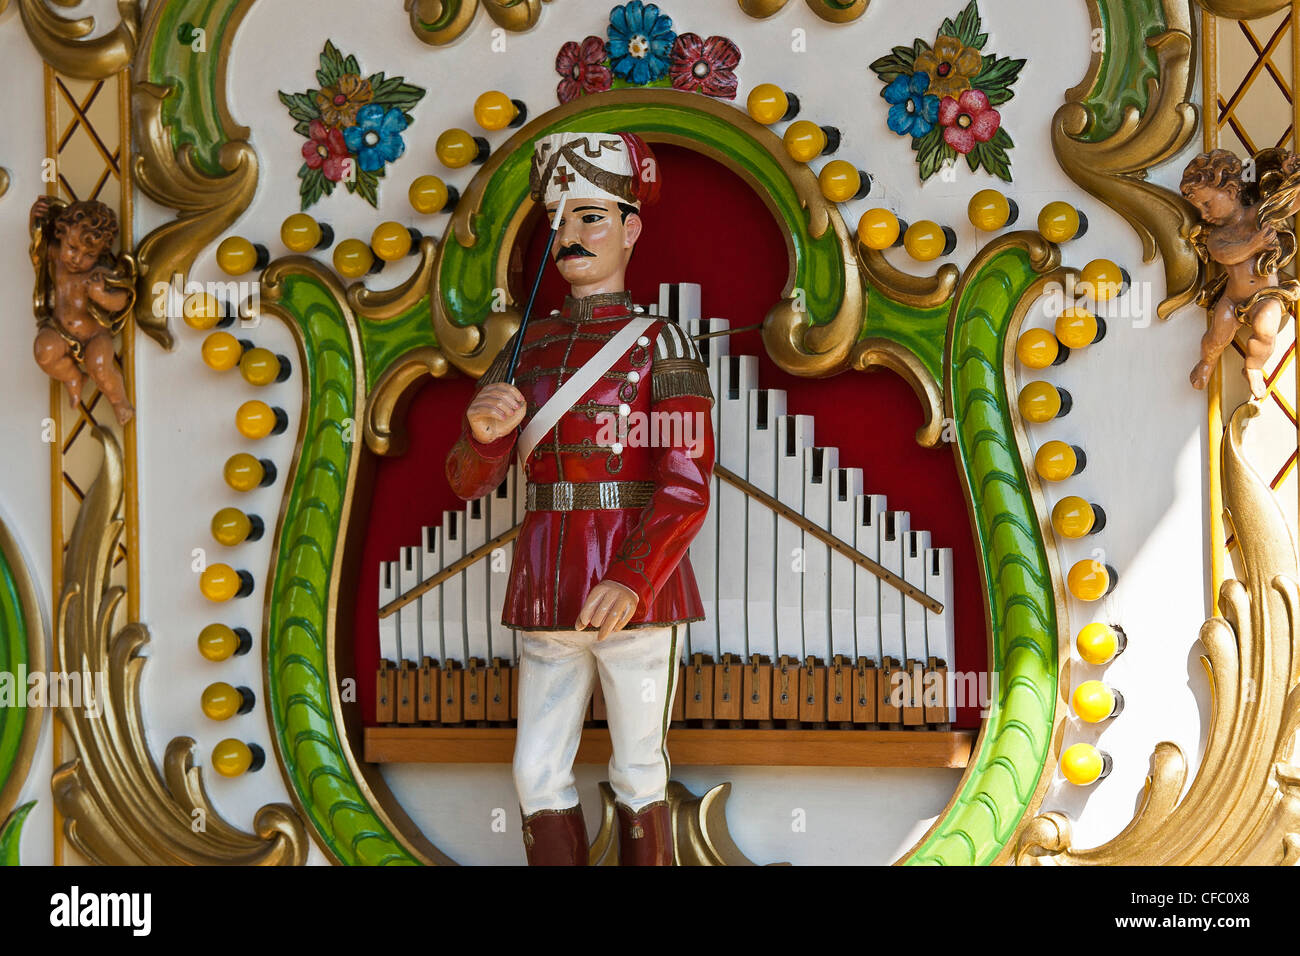 Old Wiesn, Bavaria, Germany, Europe, beer festival, October, tradition, figure, figures, concert organ, Limonaire, - Stock Image